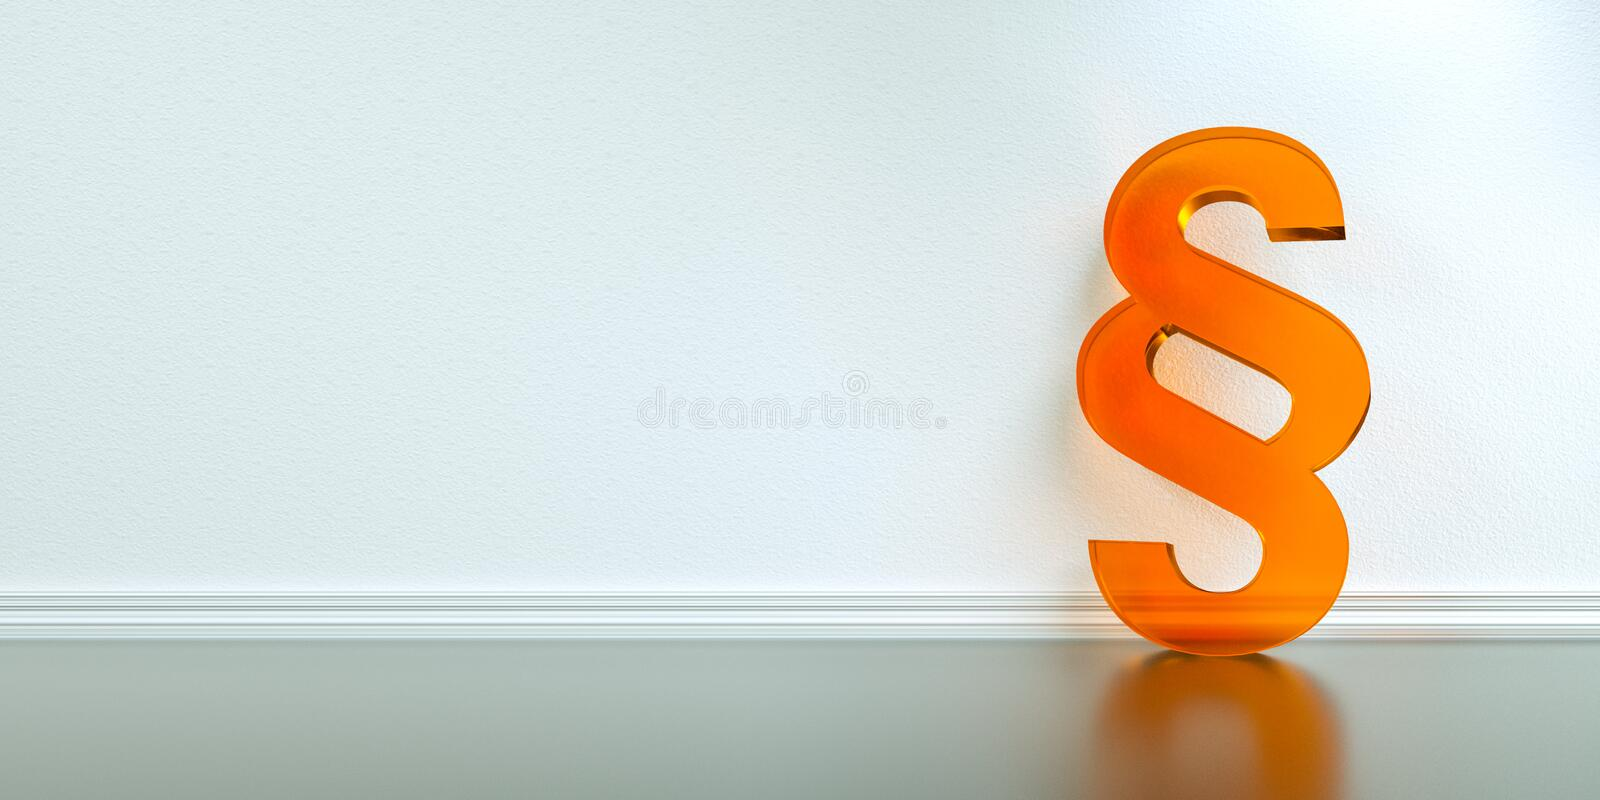 Symbol of Law and Justice - Paragraph / section sign. On the floor in apartment stock photos